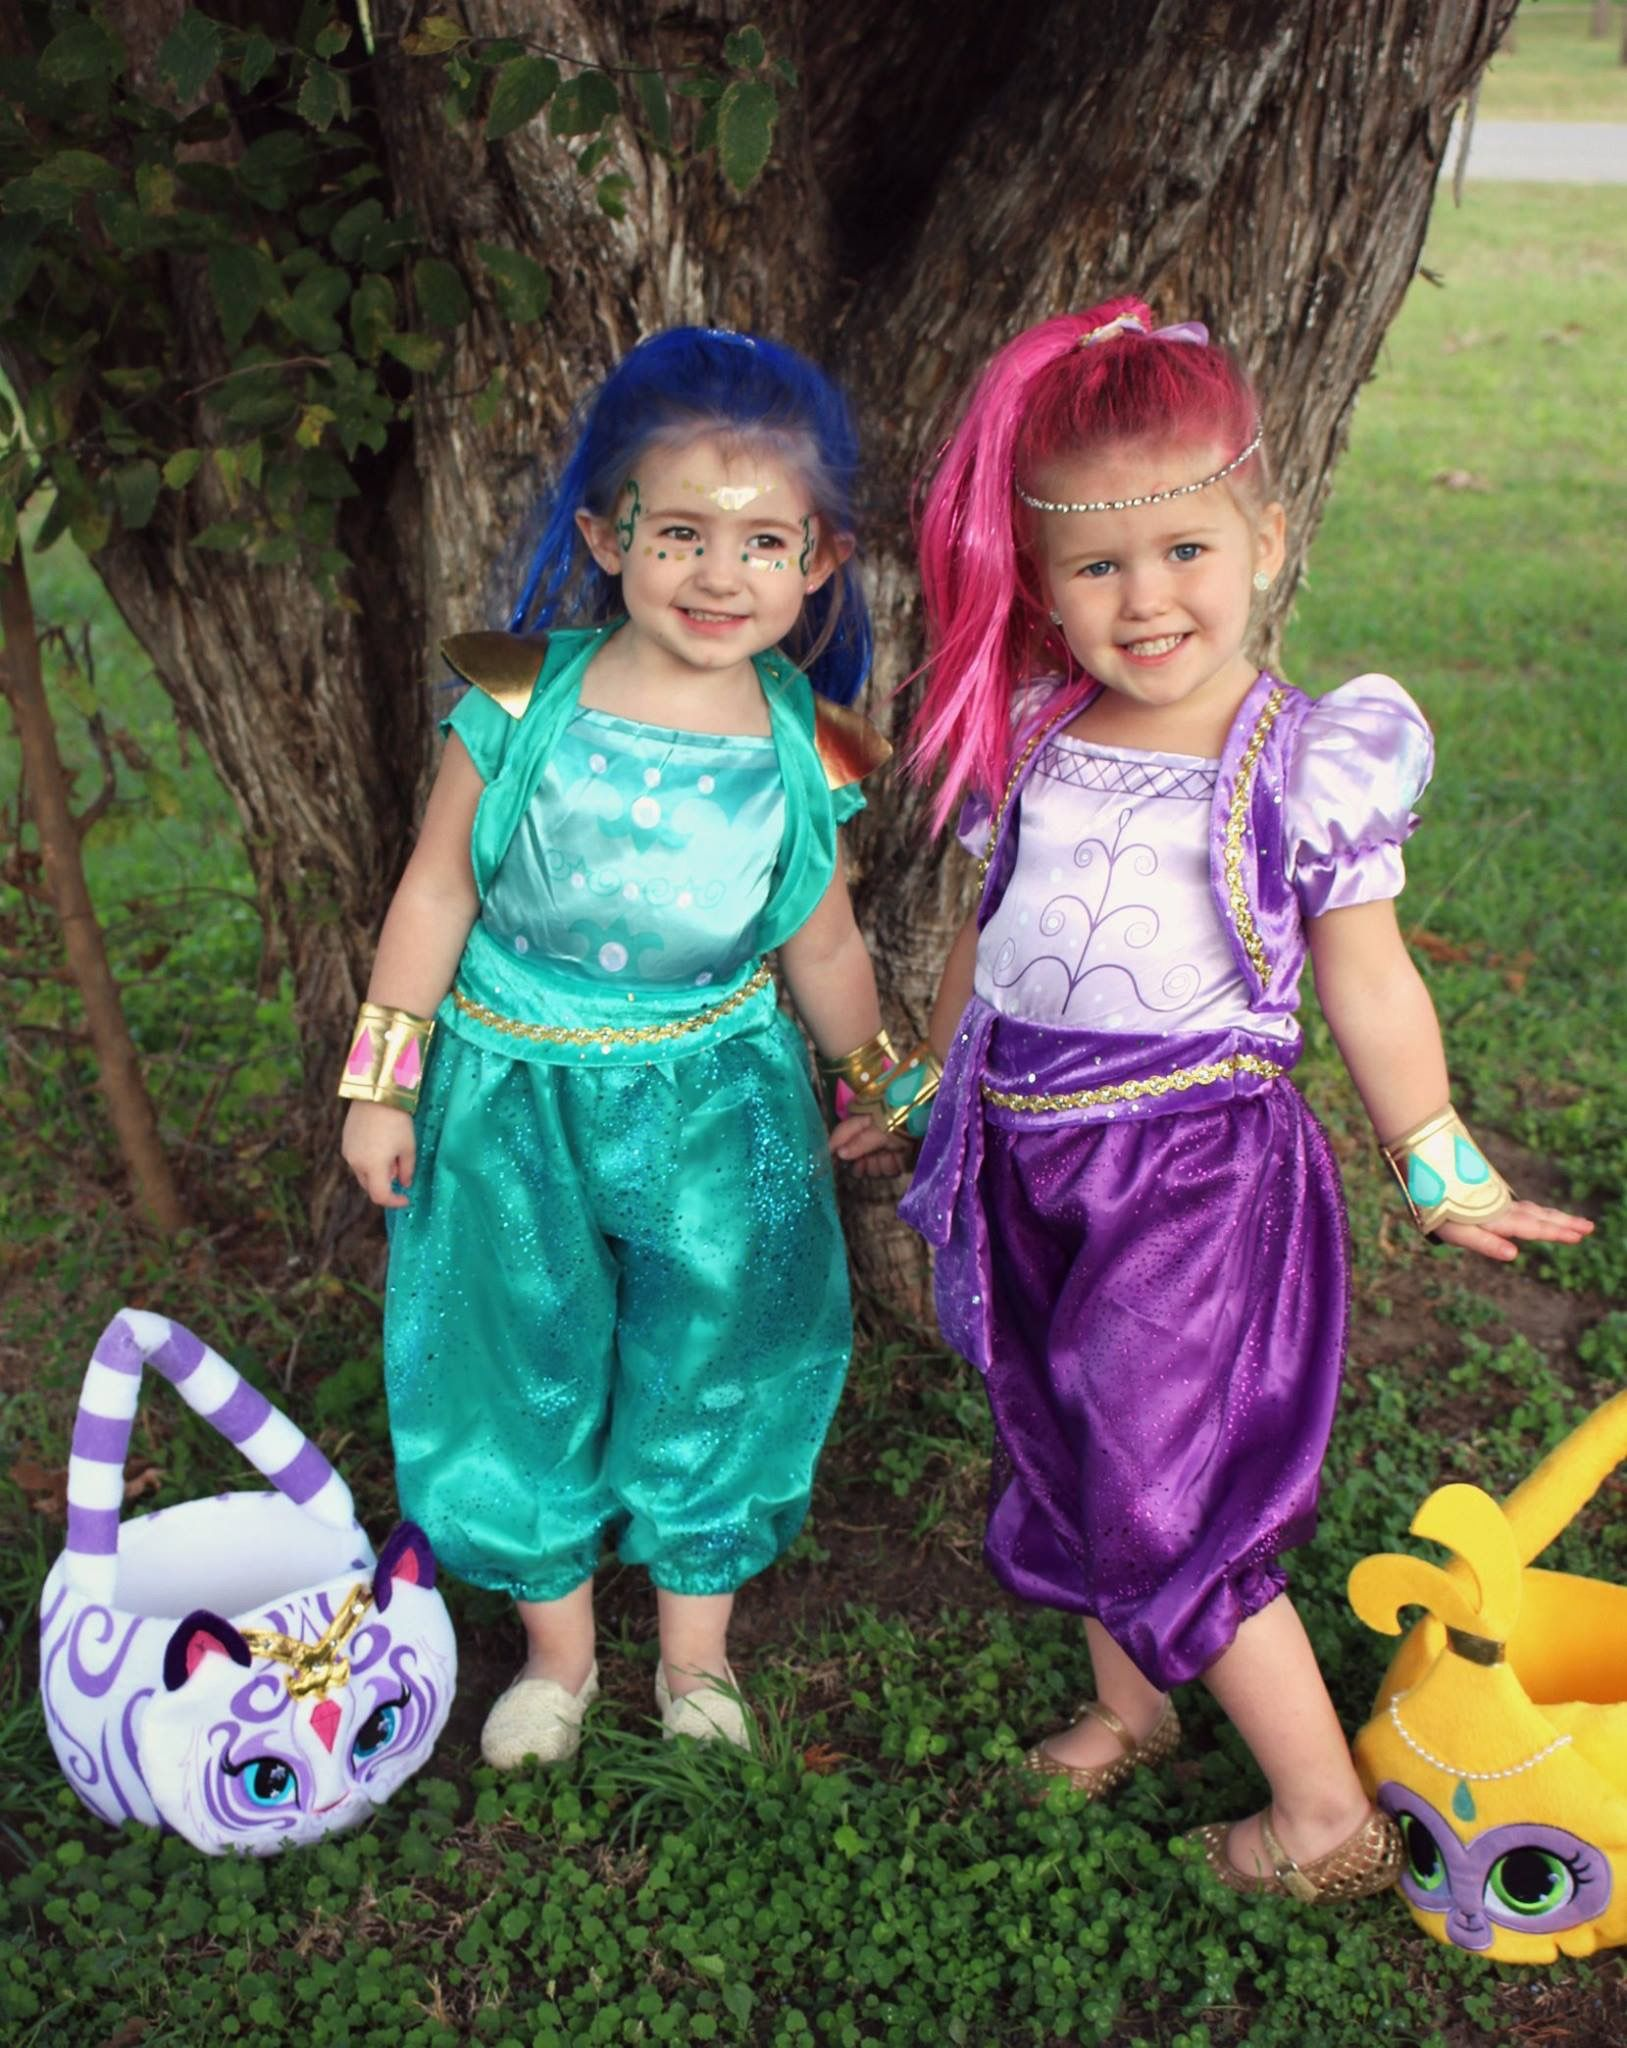 shimmer and shine halloween costume idea also perfect for a themed birthday party we got both of these costumes at walmart the hair piece and armbands